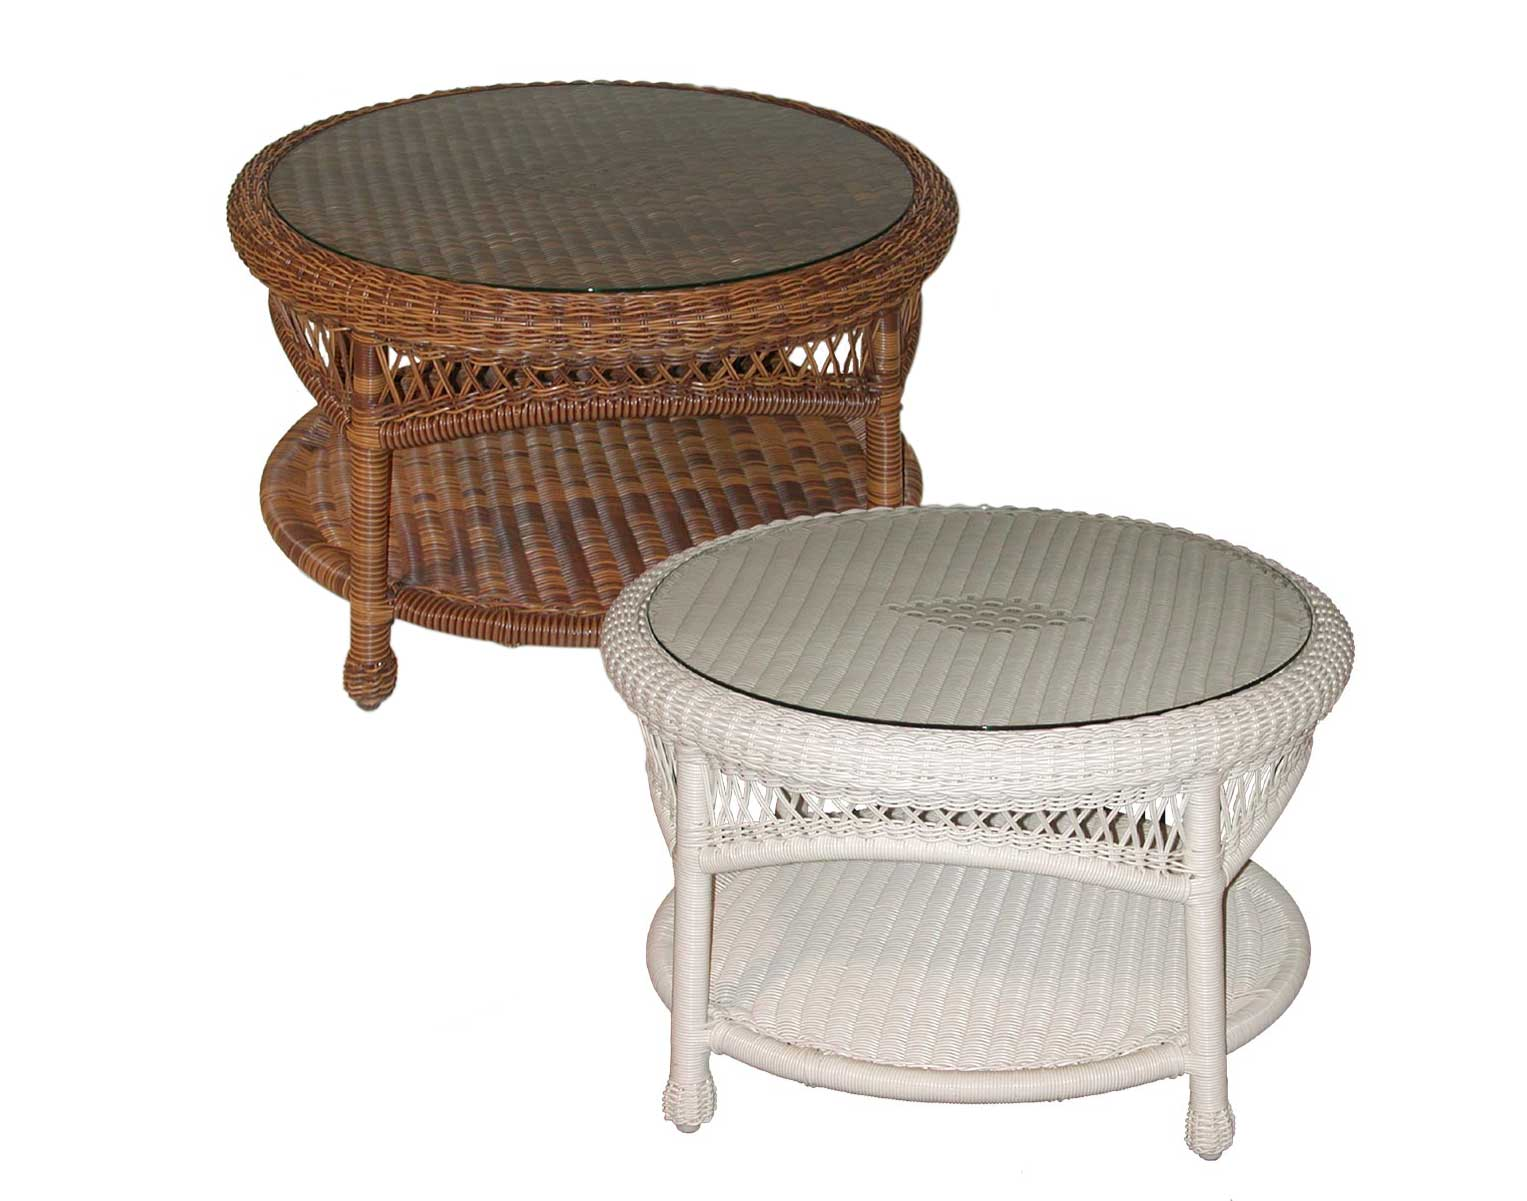 Wicker sands round coffee table White wicker coffee table